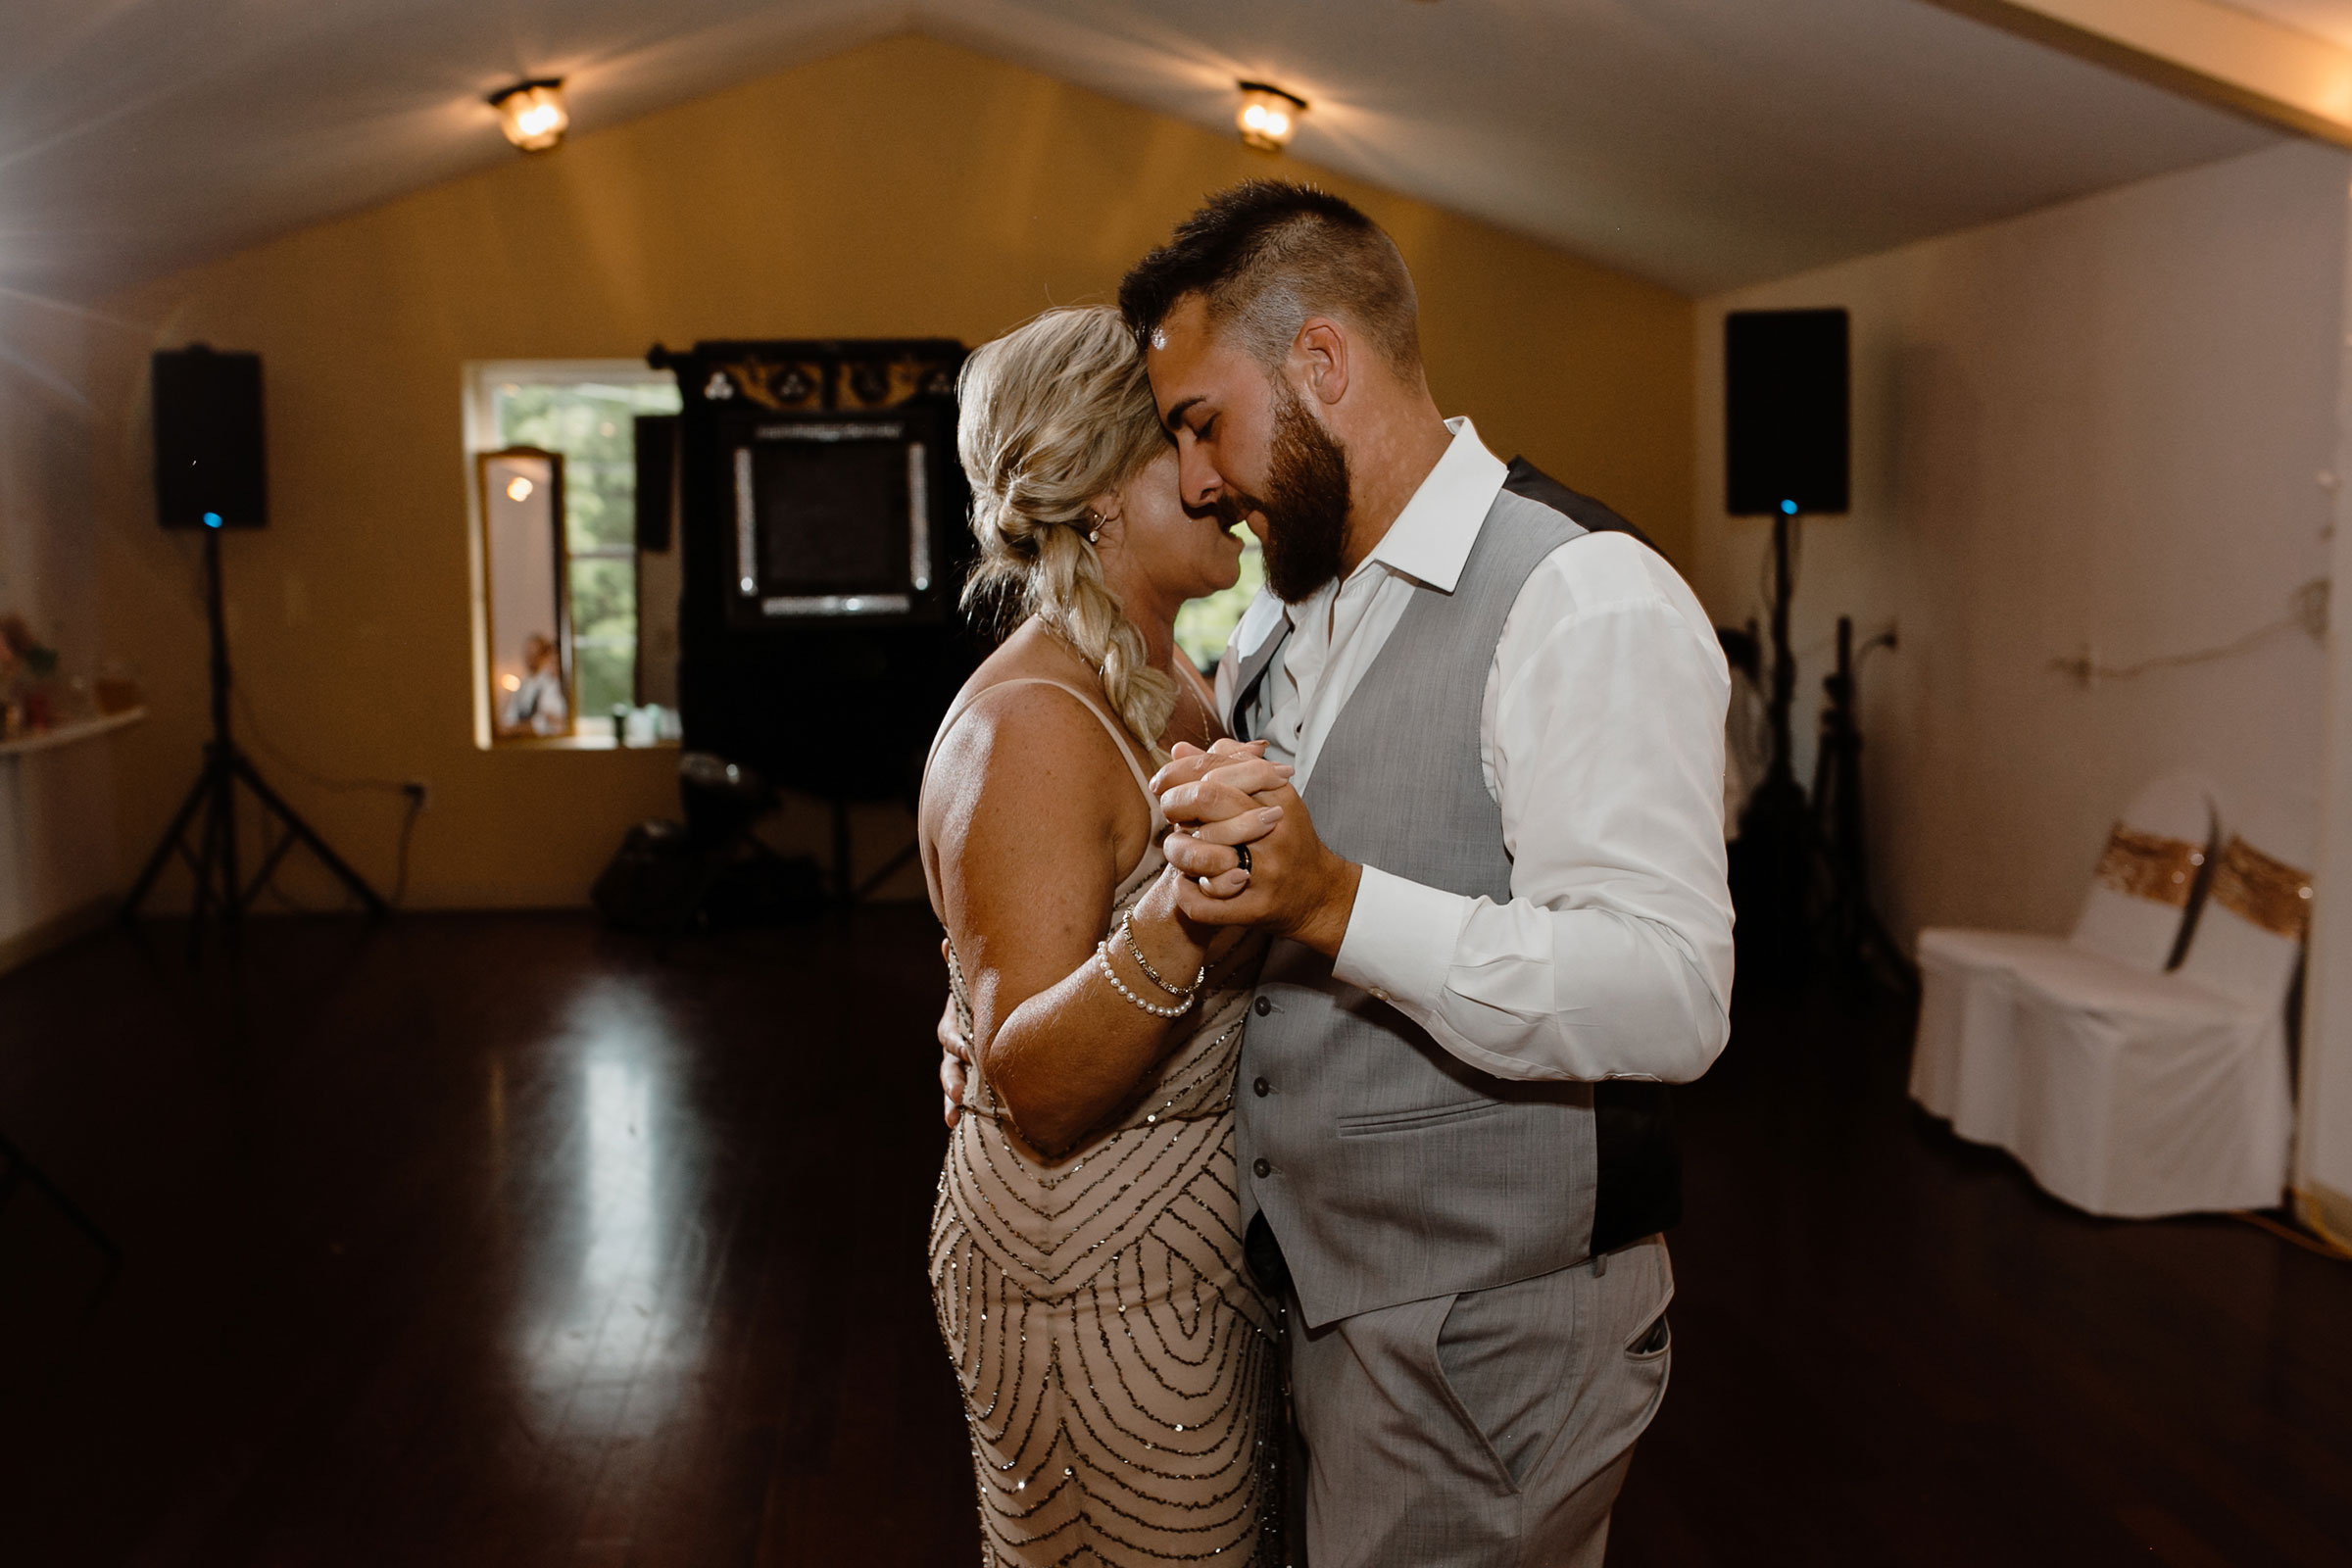 groom-and-mother-first-dance-wedding-summerset-winery-indianola-iowa-raelyn-ramey-photography.jpg